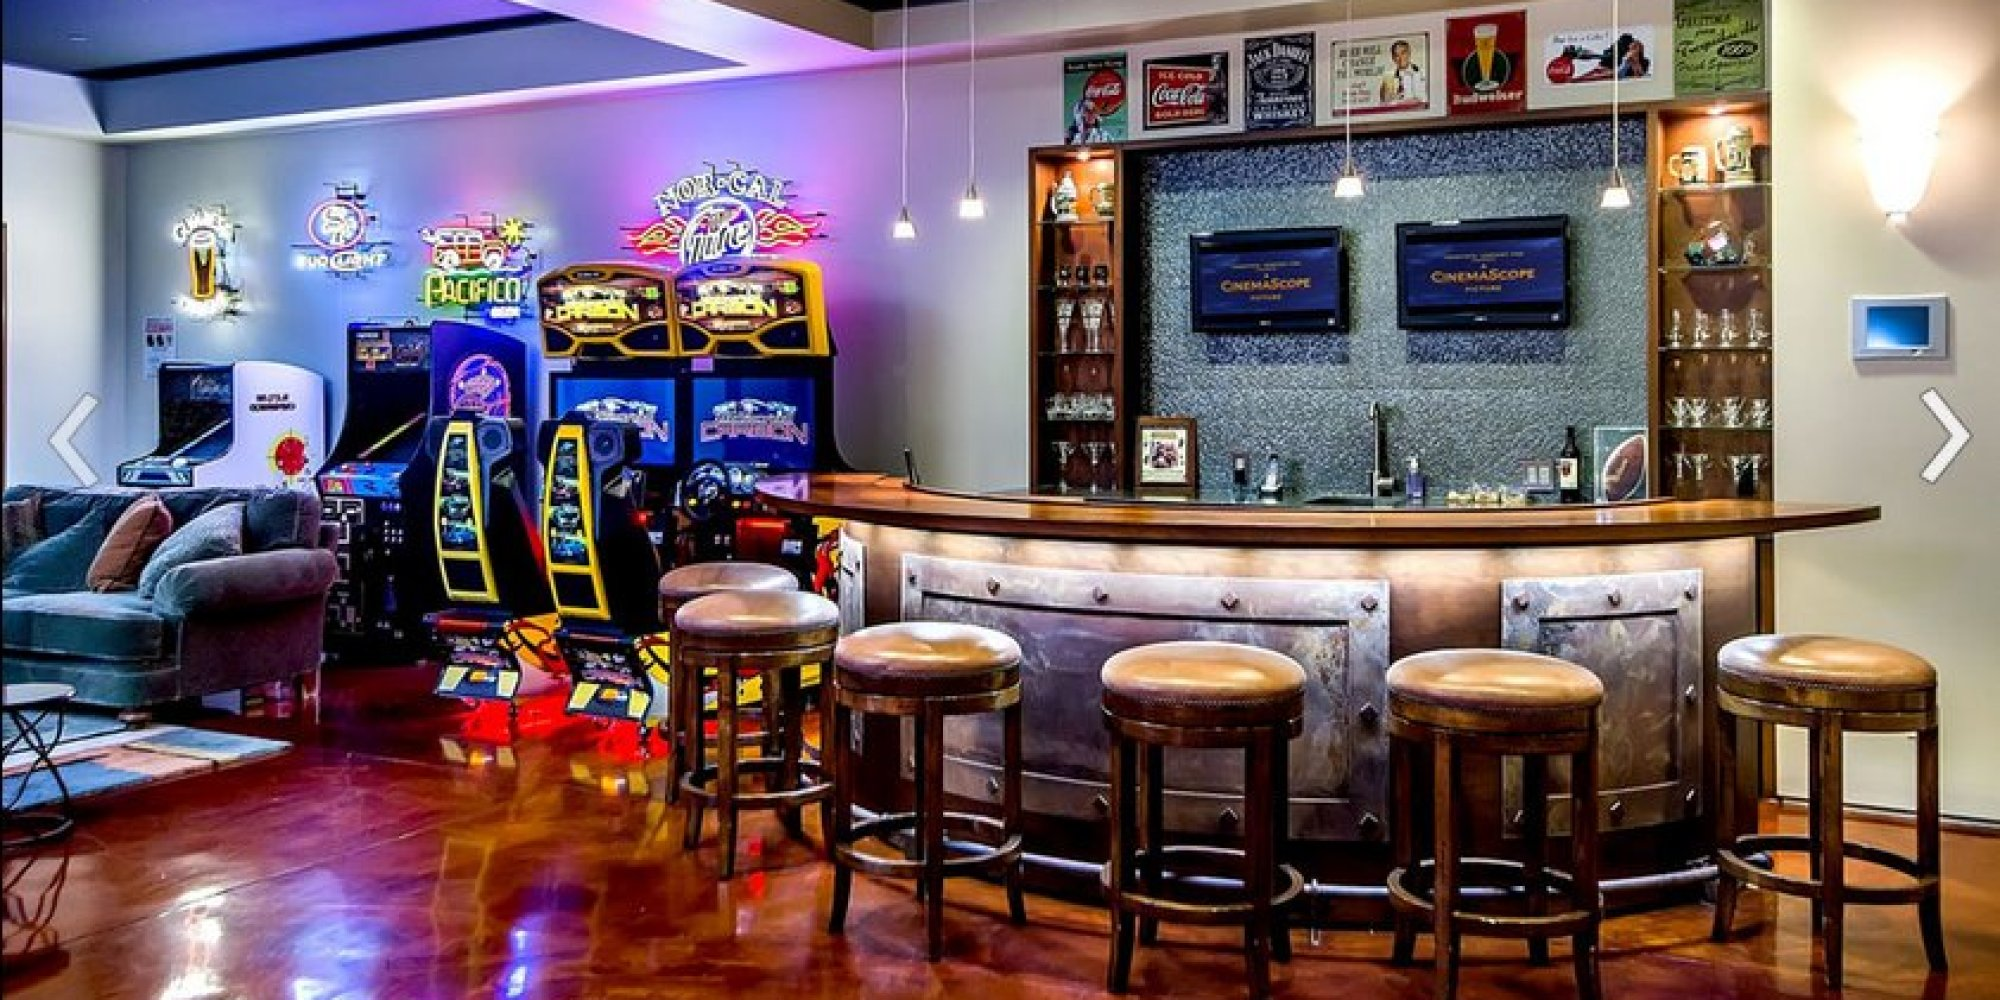 Awesome Arcade Room With Full Bar Is The Room Youd Never Want To Leave PHOTOS  HuffPost